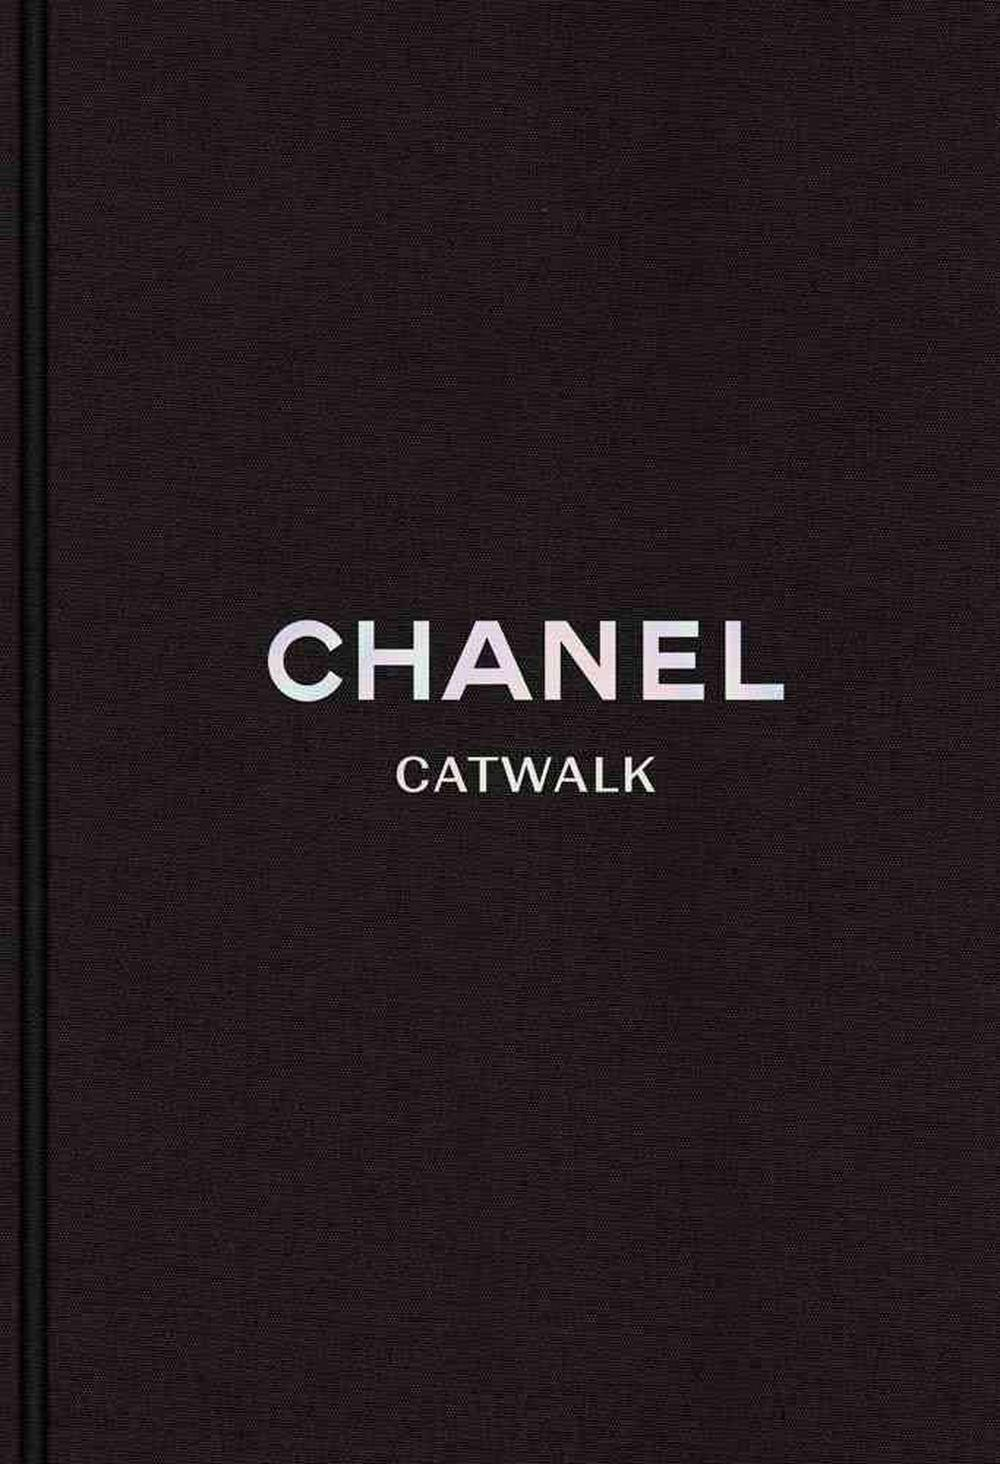 Chanel: The Karl Lagerfeld Collections (Catwalk) by Patrick Mauries, ISBN: 9780300218695